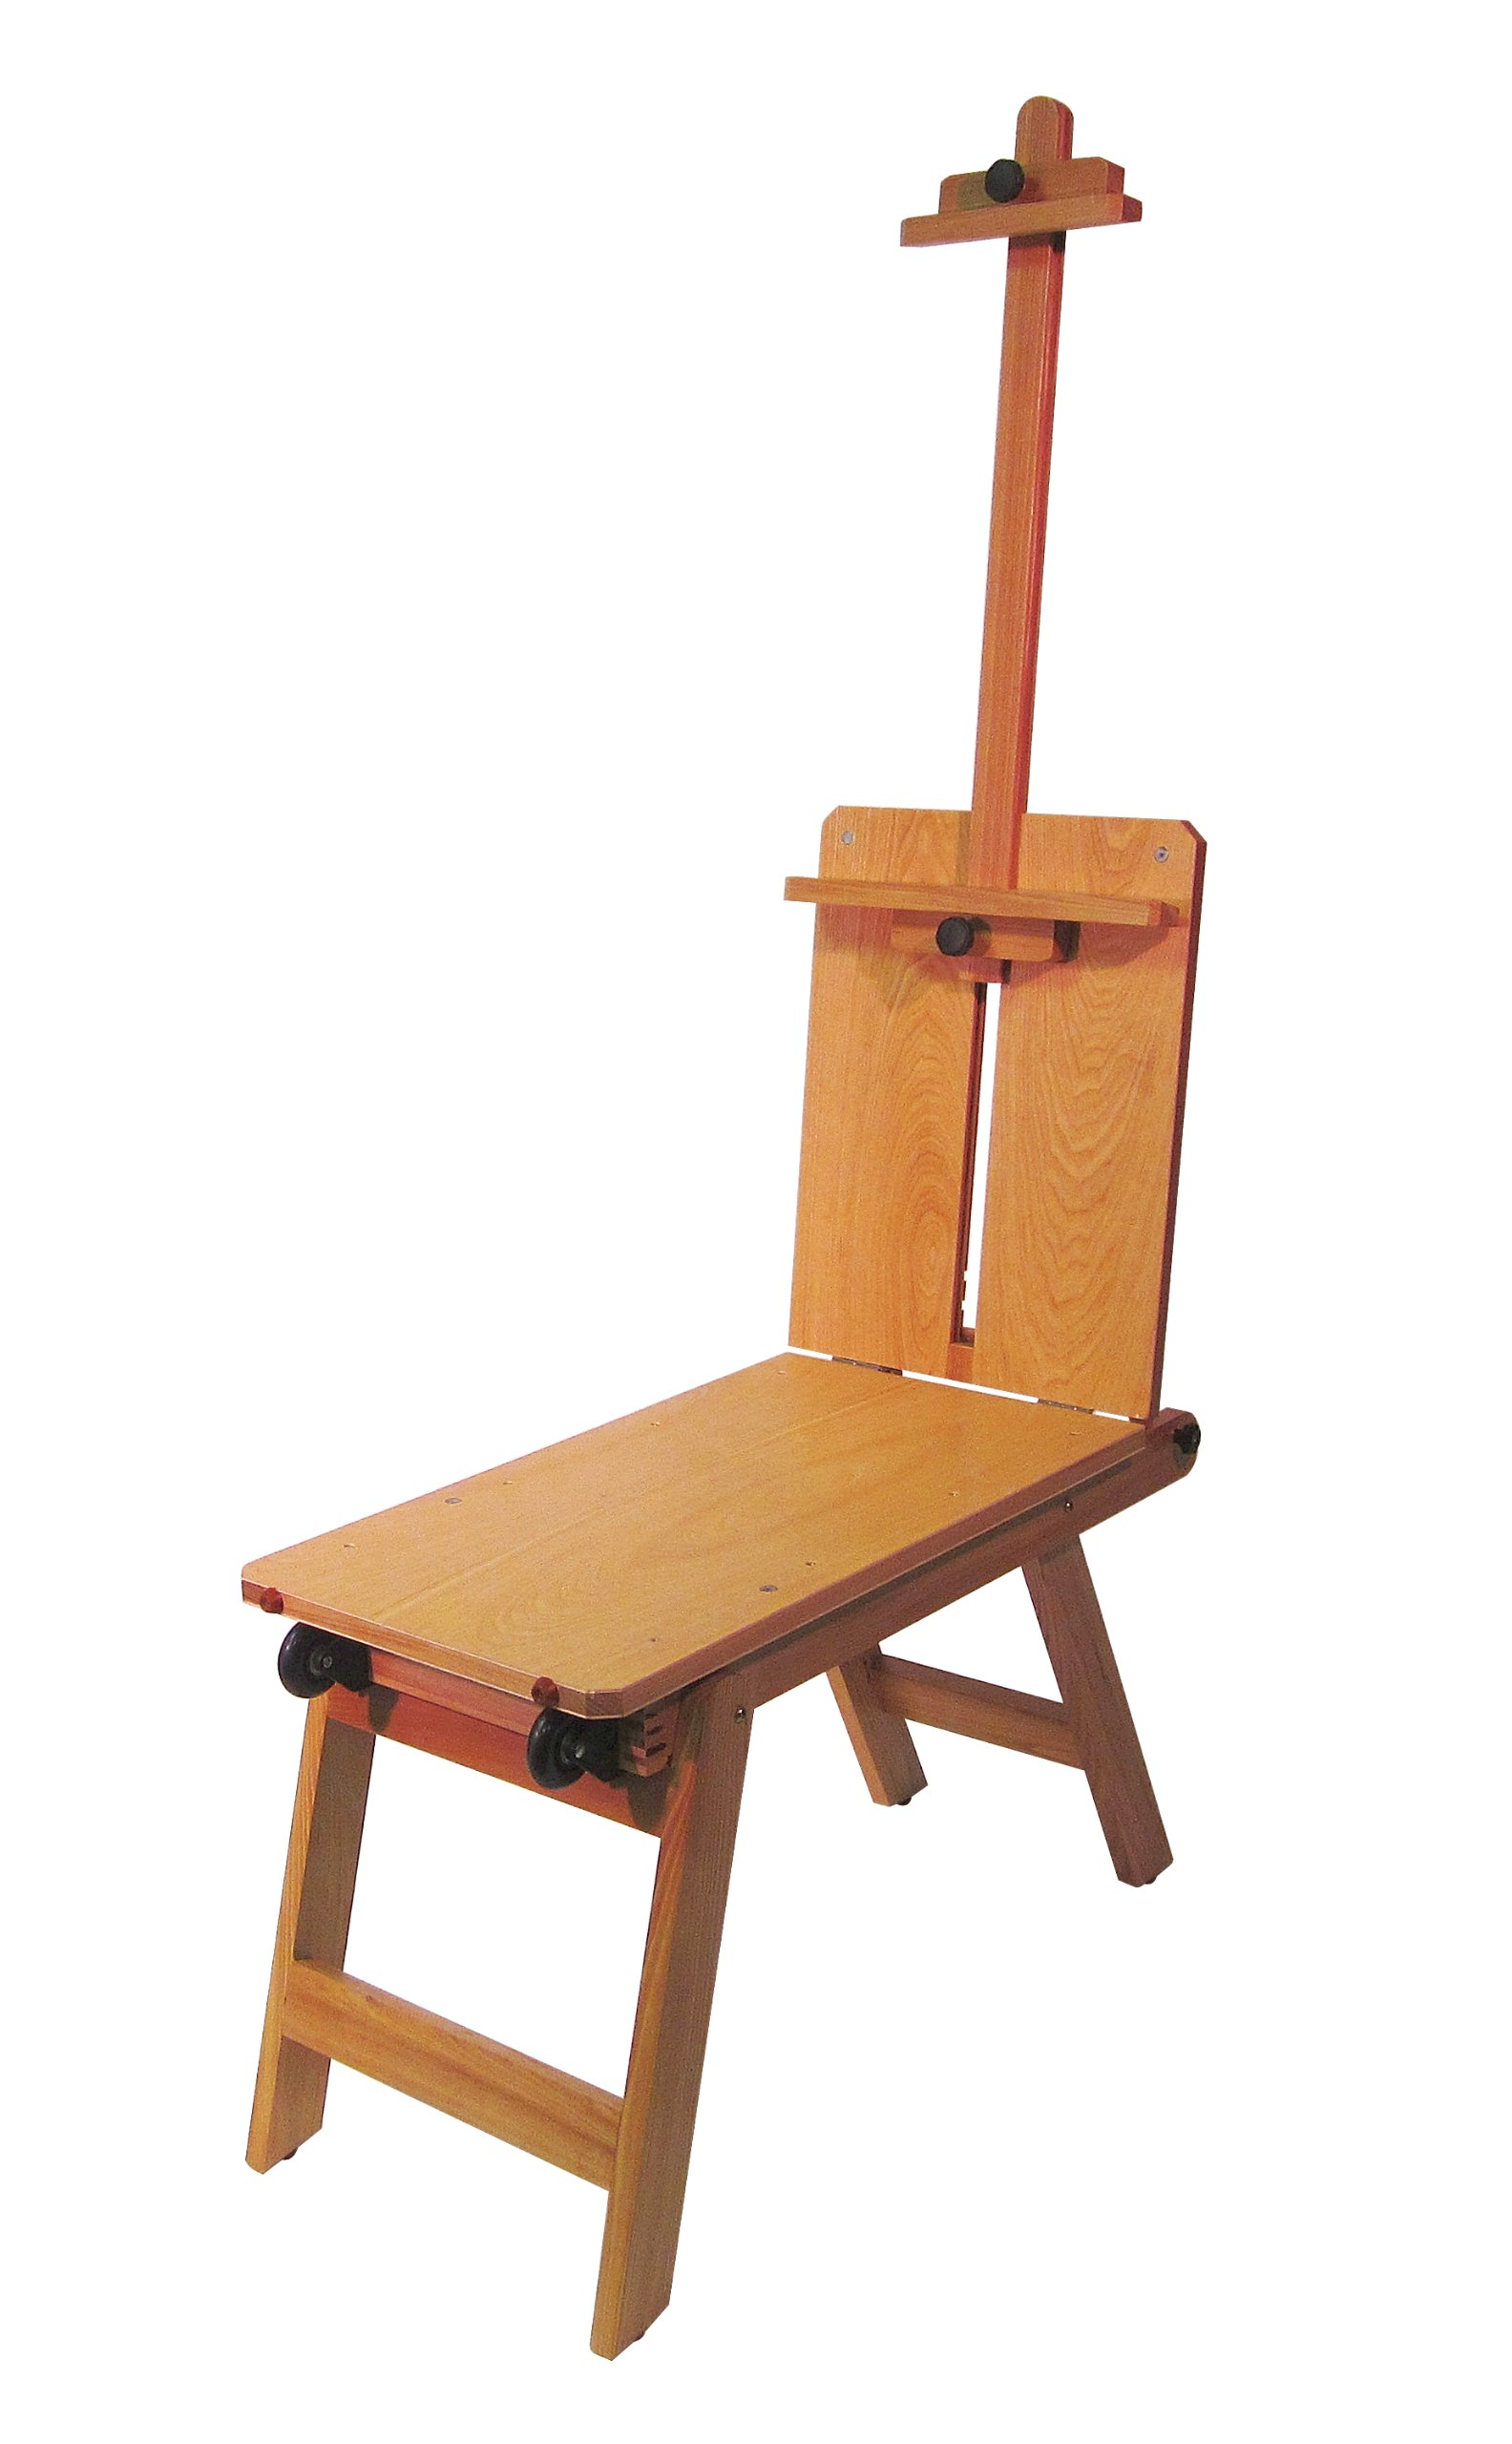 Martin Rolling Wooden Bench-Style Artist Easel